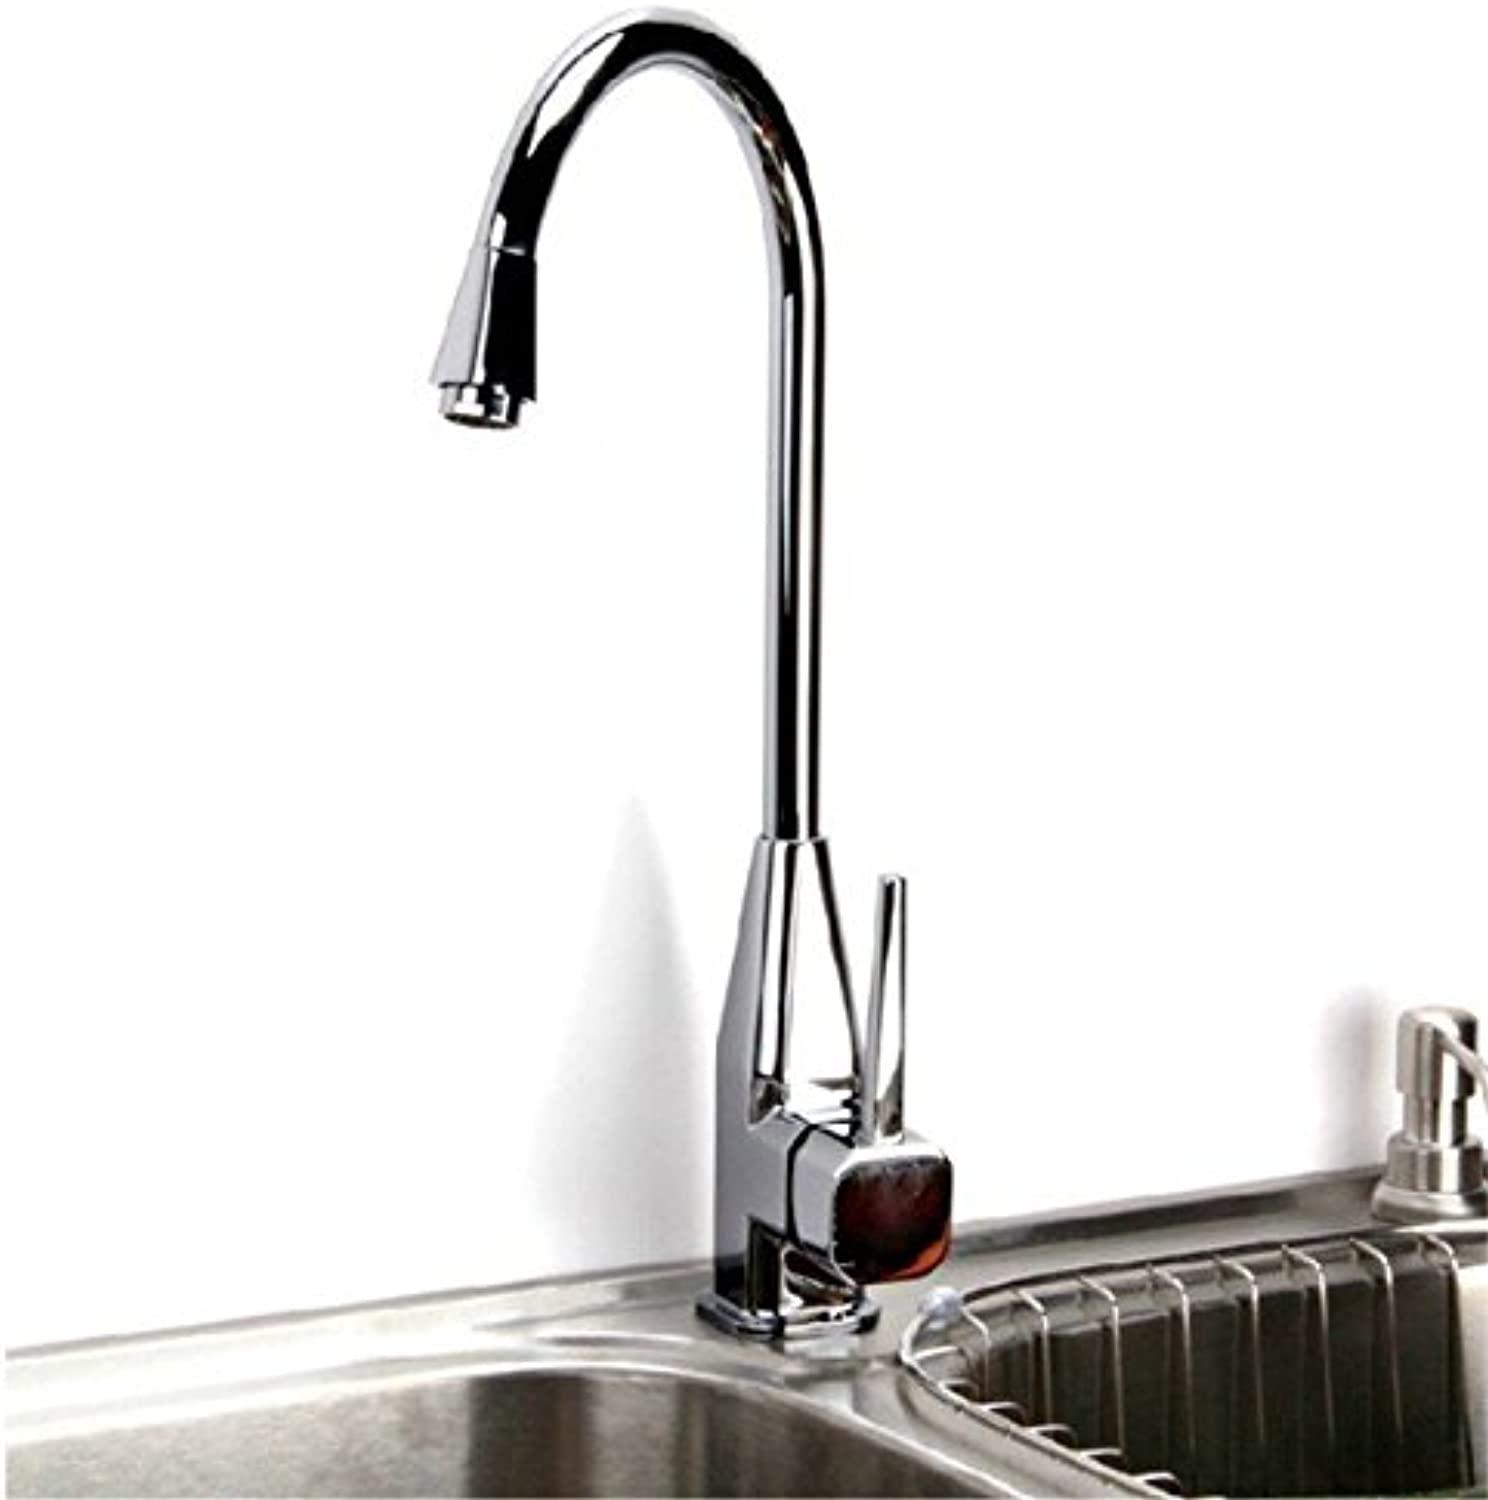 Hlluya Professional Sink Mixer Tap Kitchen Faucet Kitchen faucet, zinc alloy kitchen faucet, you can turn the COLD WATER FAUCET